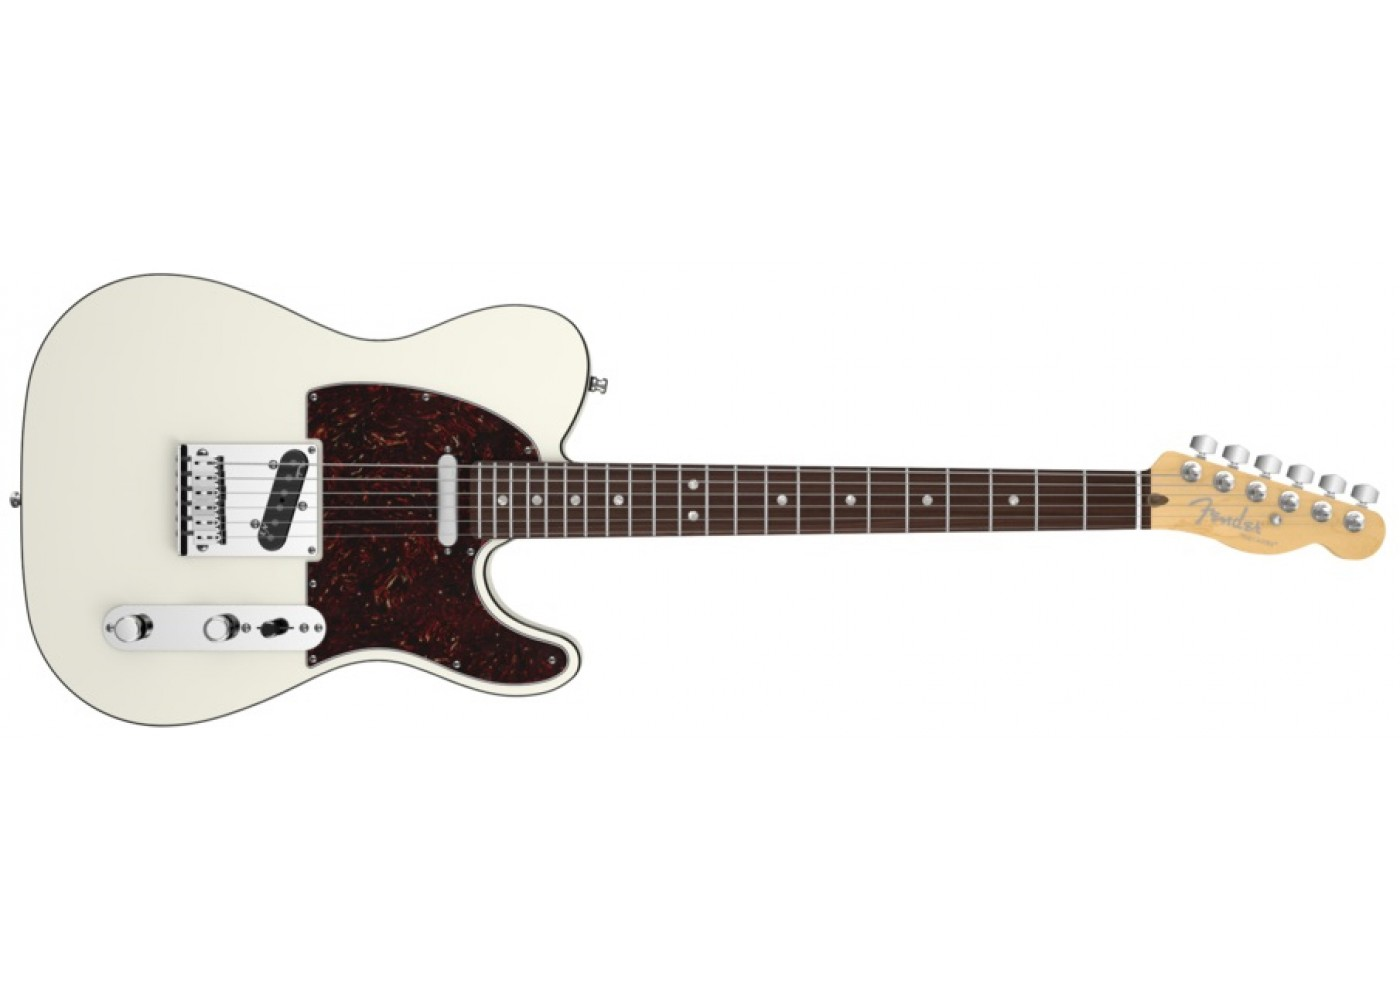 fender american deluxe telecaster electric guitar olympic white. Black Bedroom Furniture Sets. Home Design Ideas